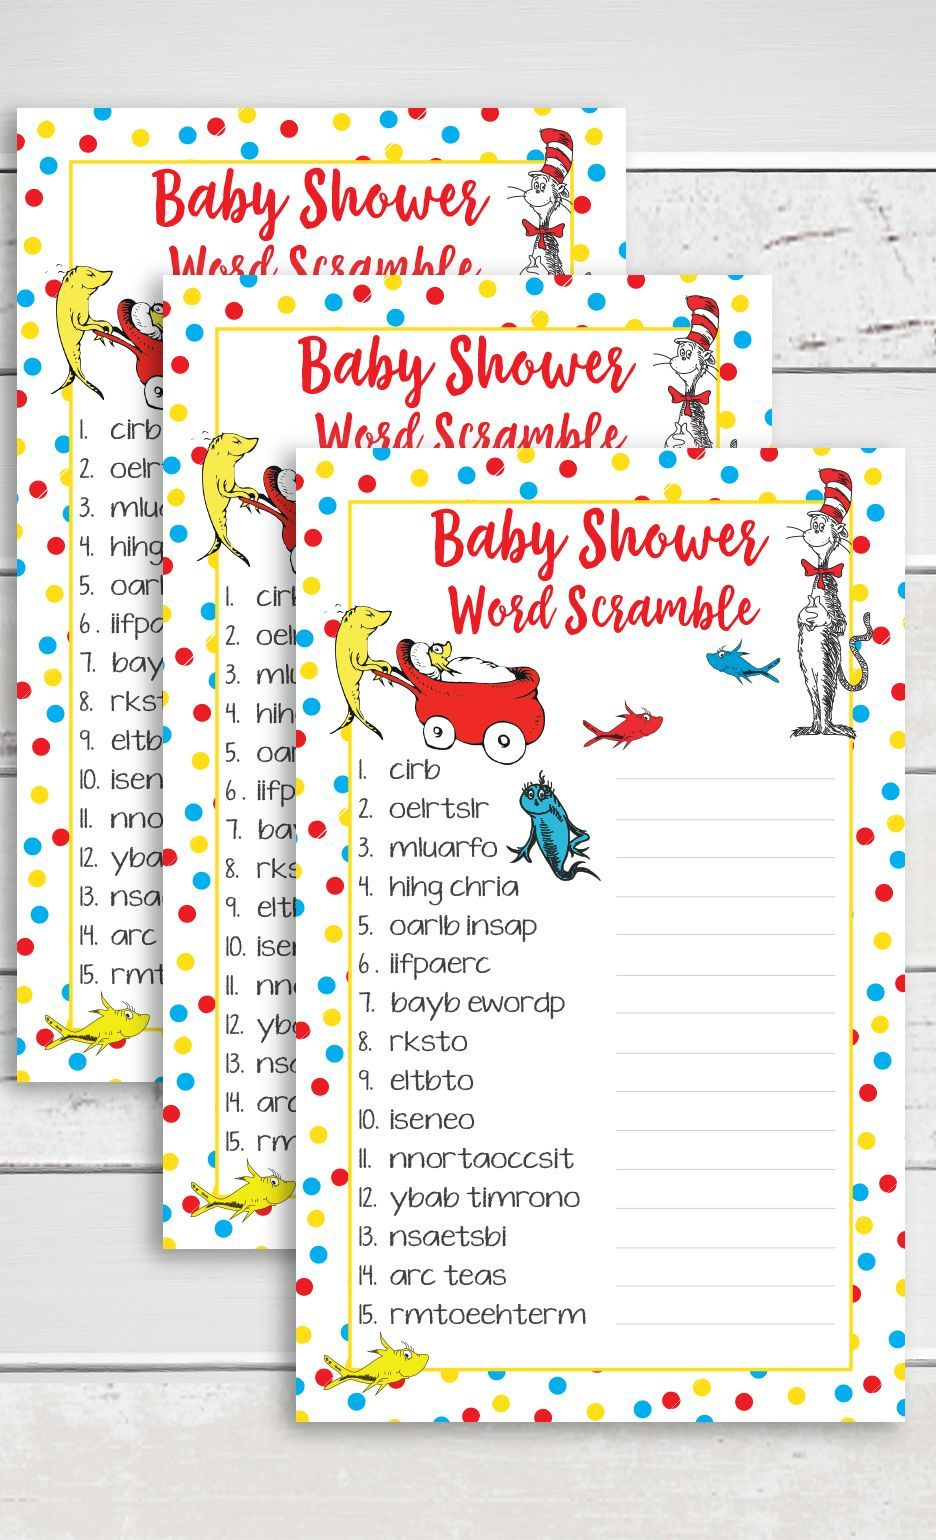 Dr Seuss Baby Shower Game Word Scramble Rearrange The Scrambled